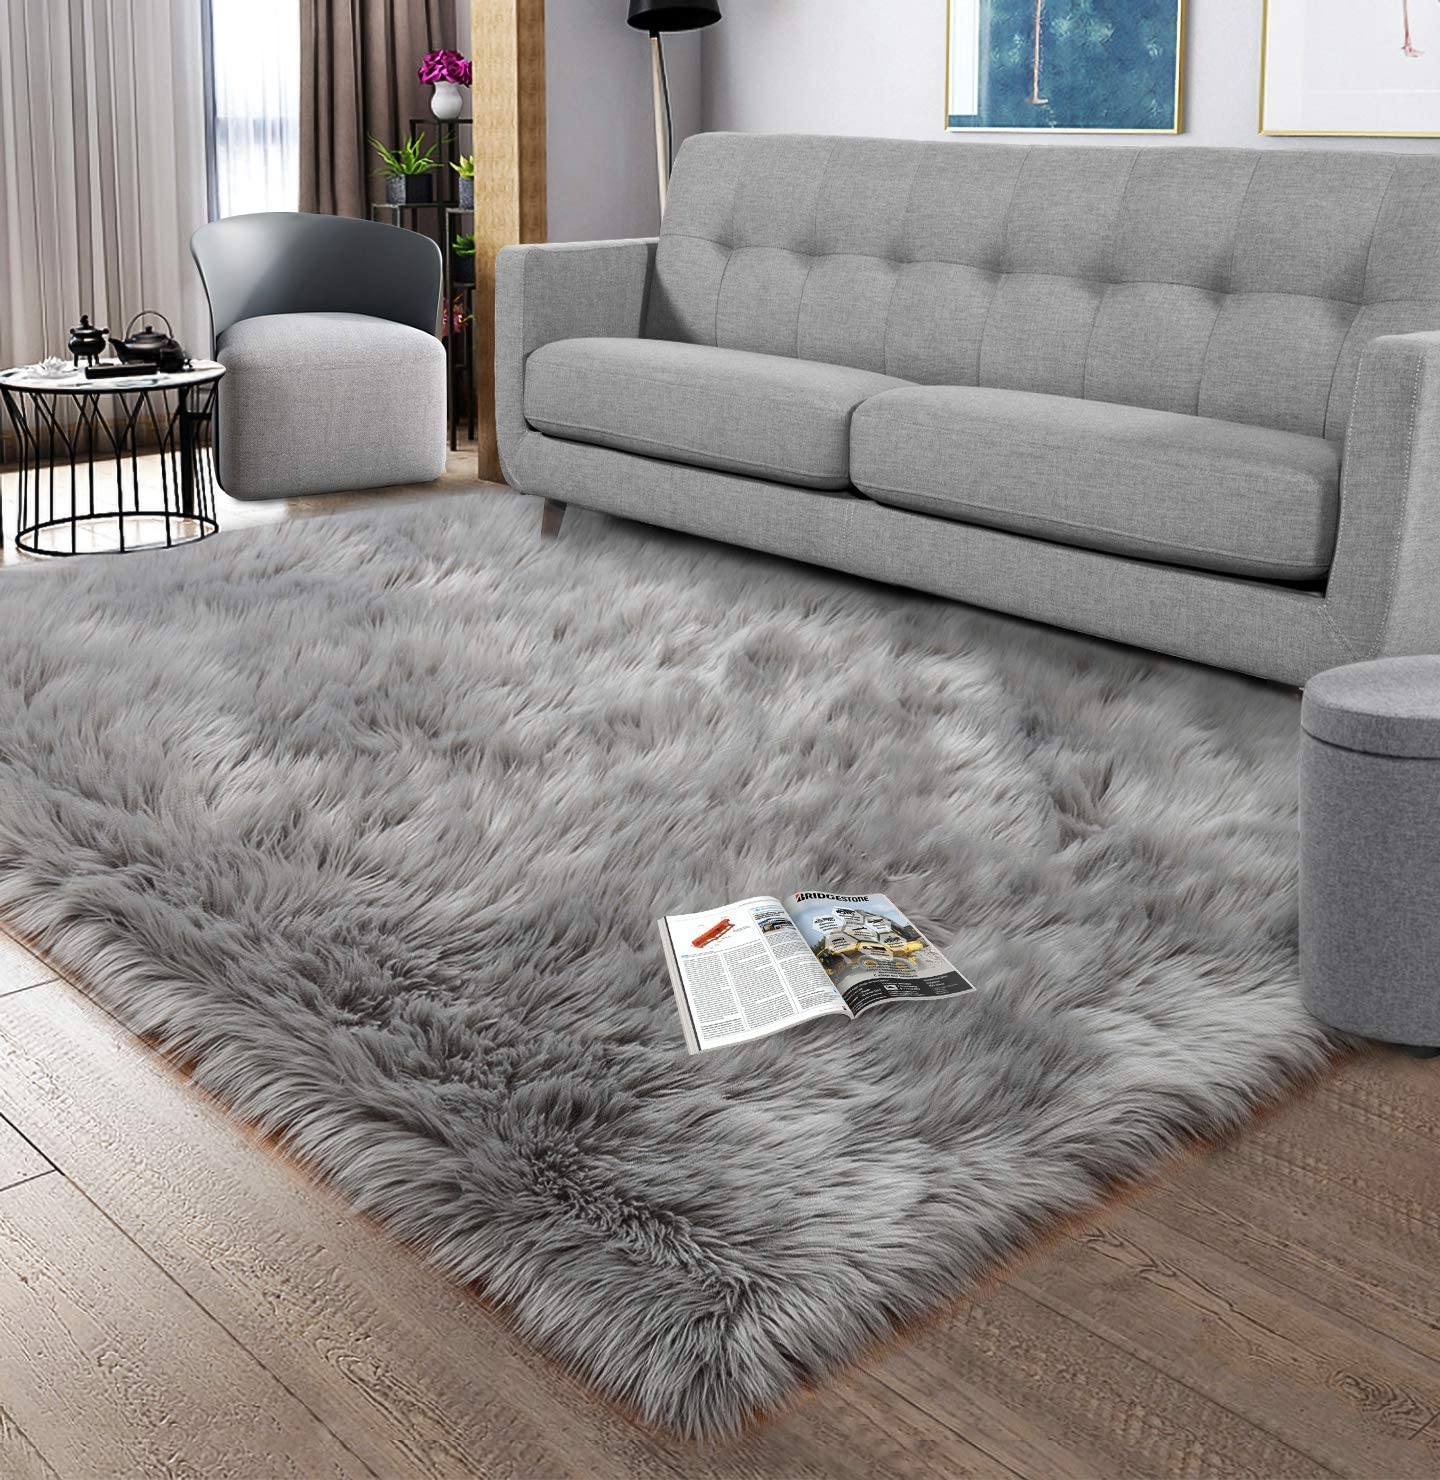 Noahas Luxury Fluffy Rugs Ranking TOP5 Bedroom Bedside Fur Furry Max 62% OFF Carpet Faux